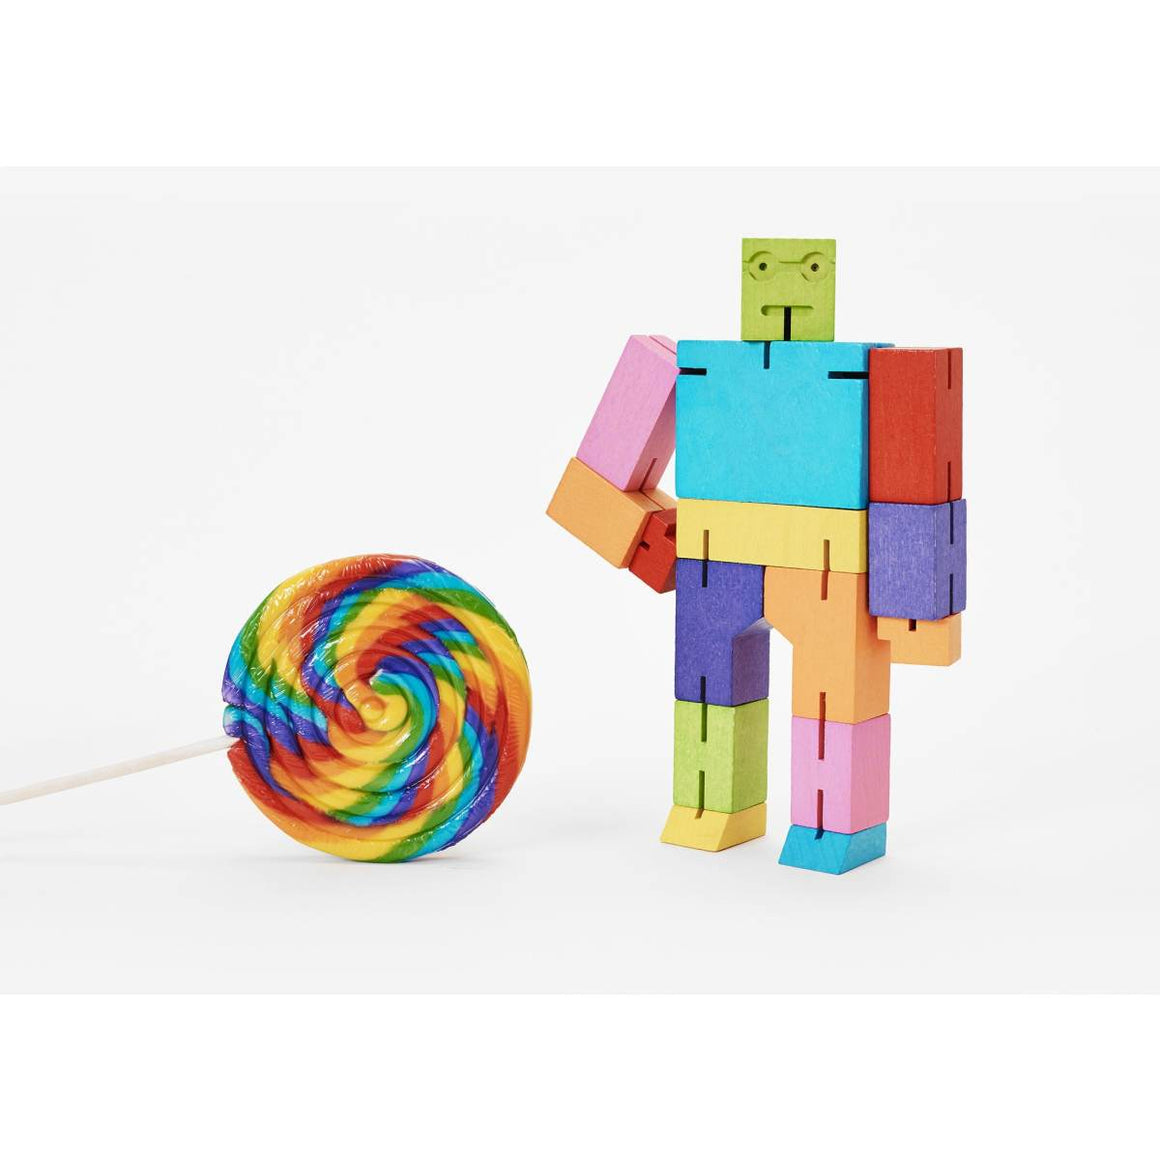 A wooden robot puzzle toy made of multicoloured interconnected wood pieces. Shown Standing next to a rainbow lollipop.